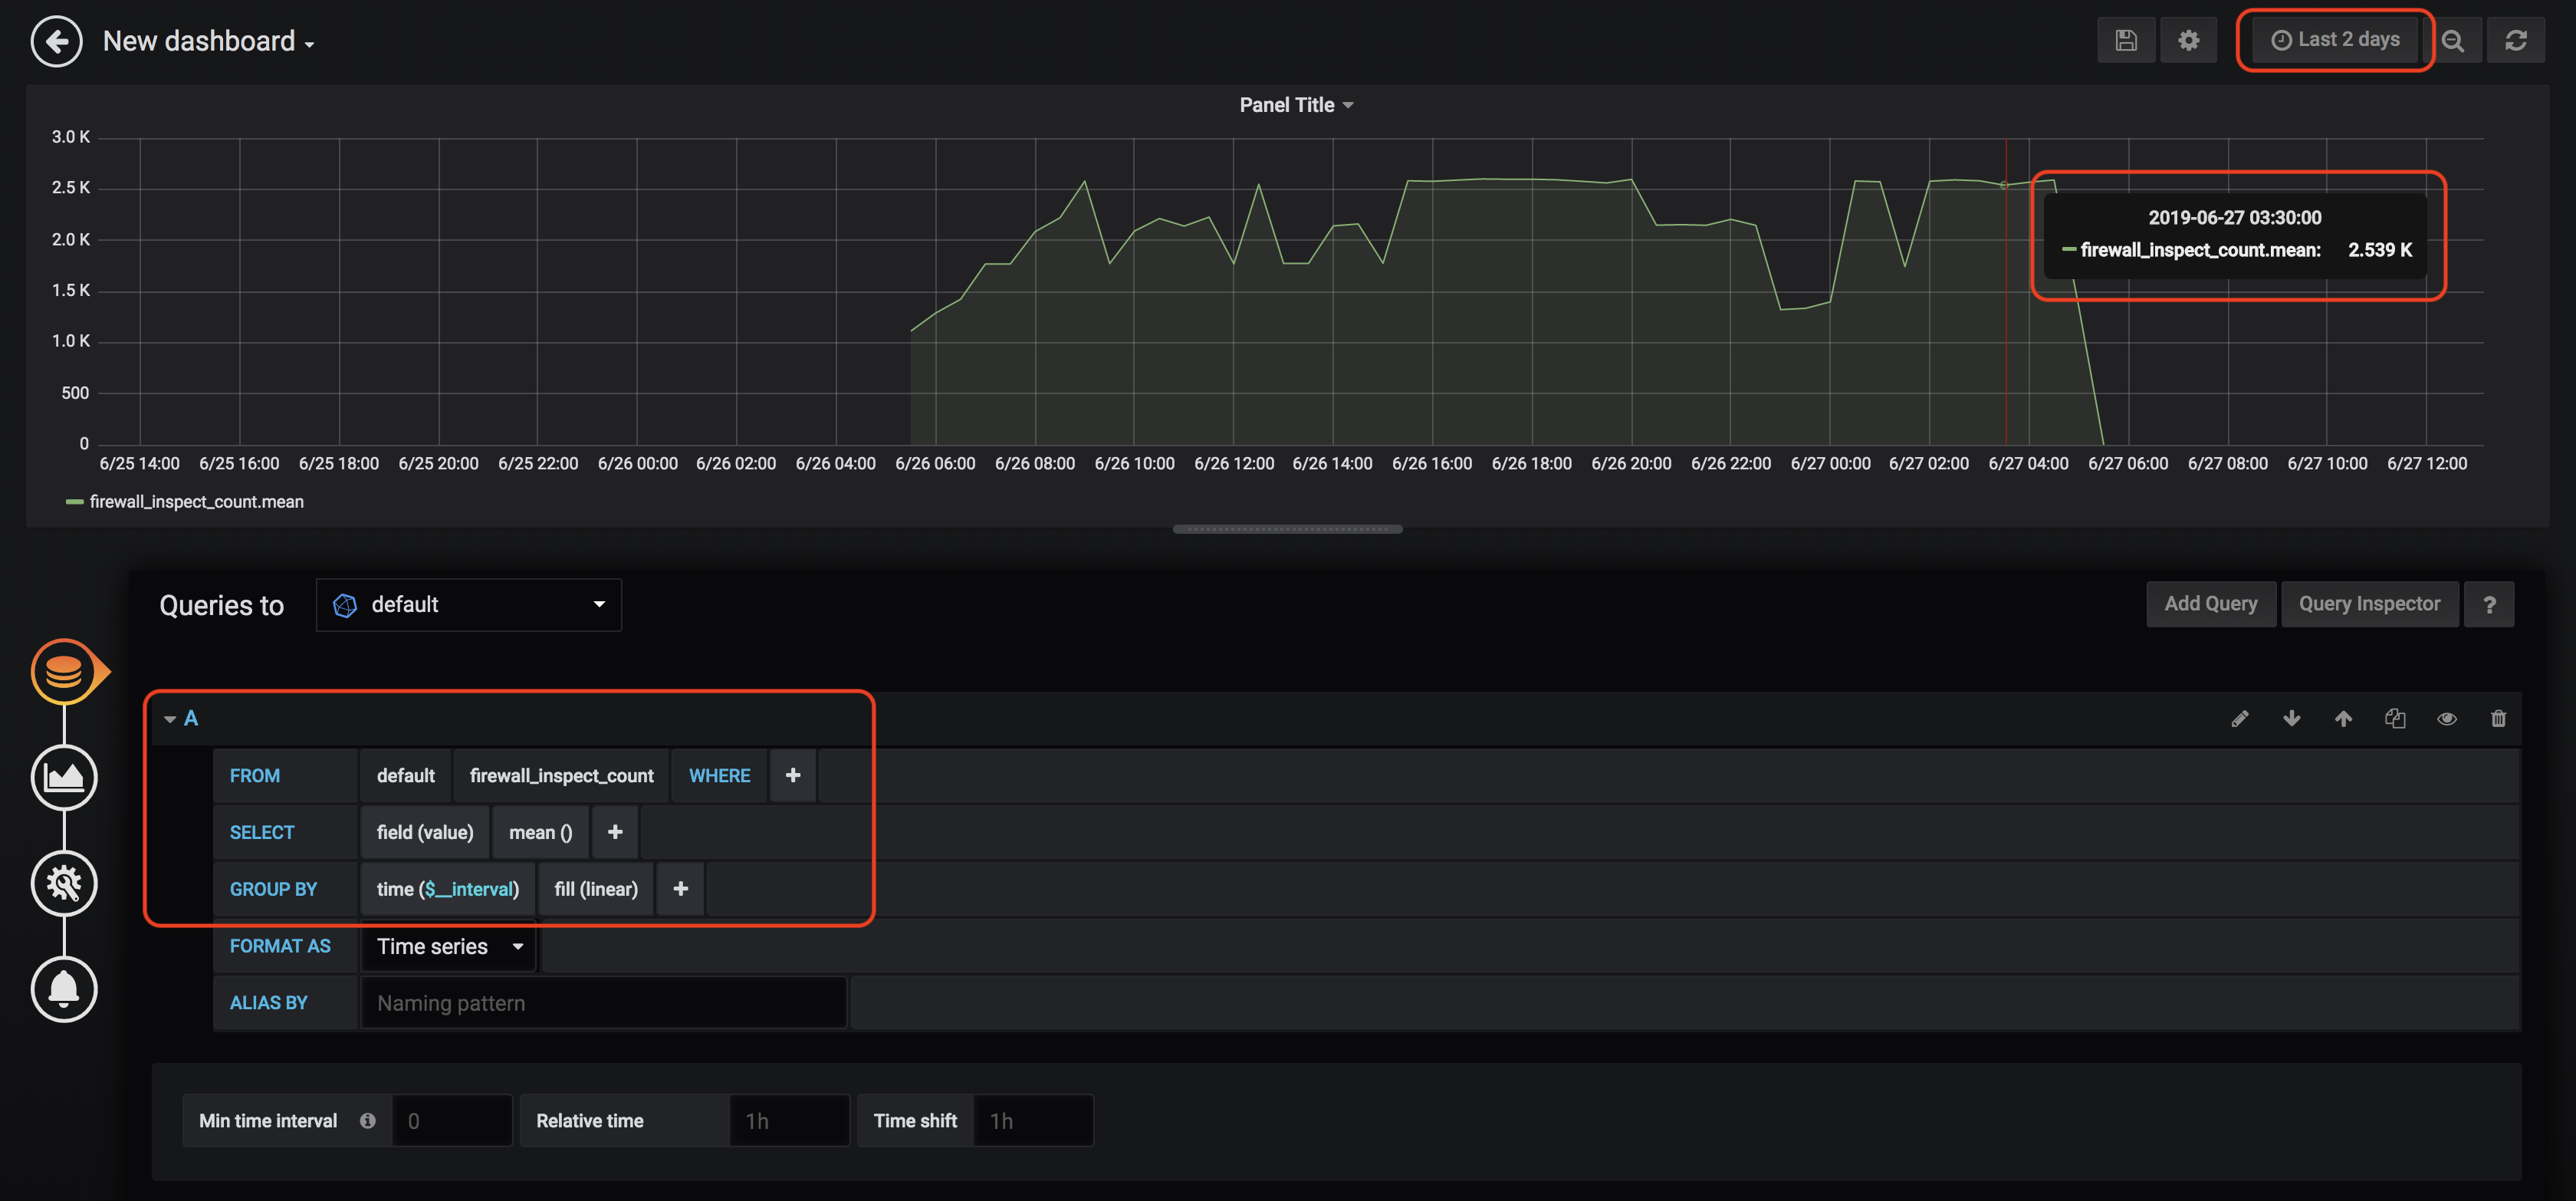 suchandanreddy/sdwan-integration-with-influxdb-grafana: How